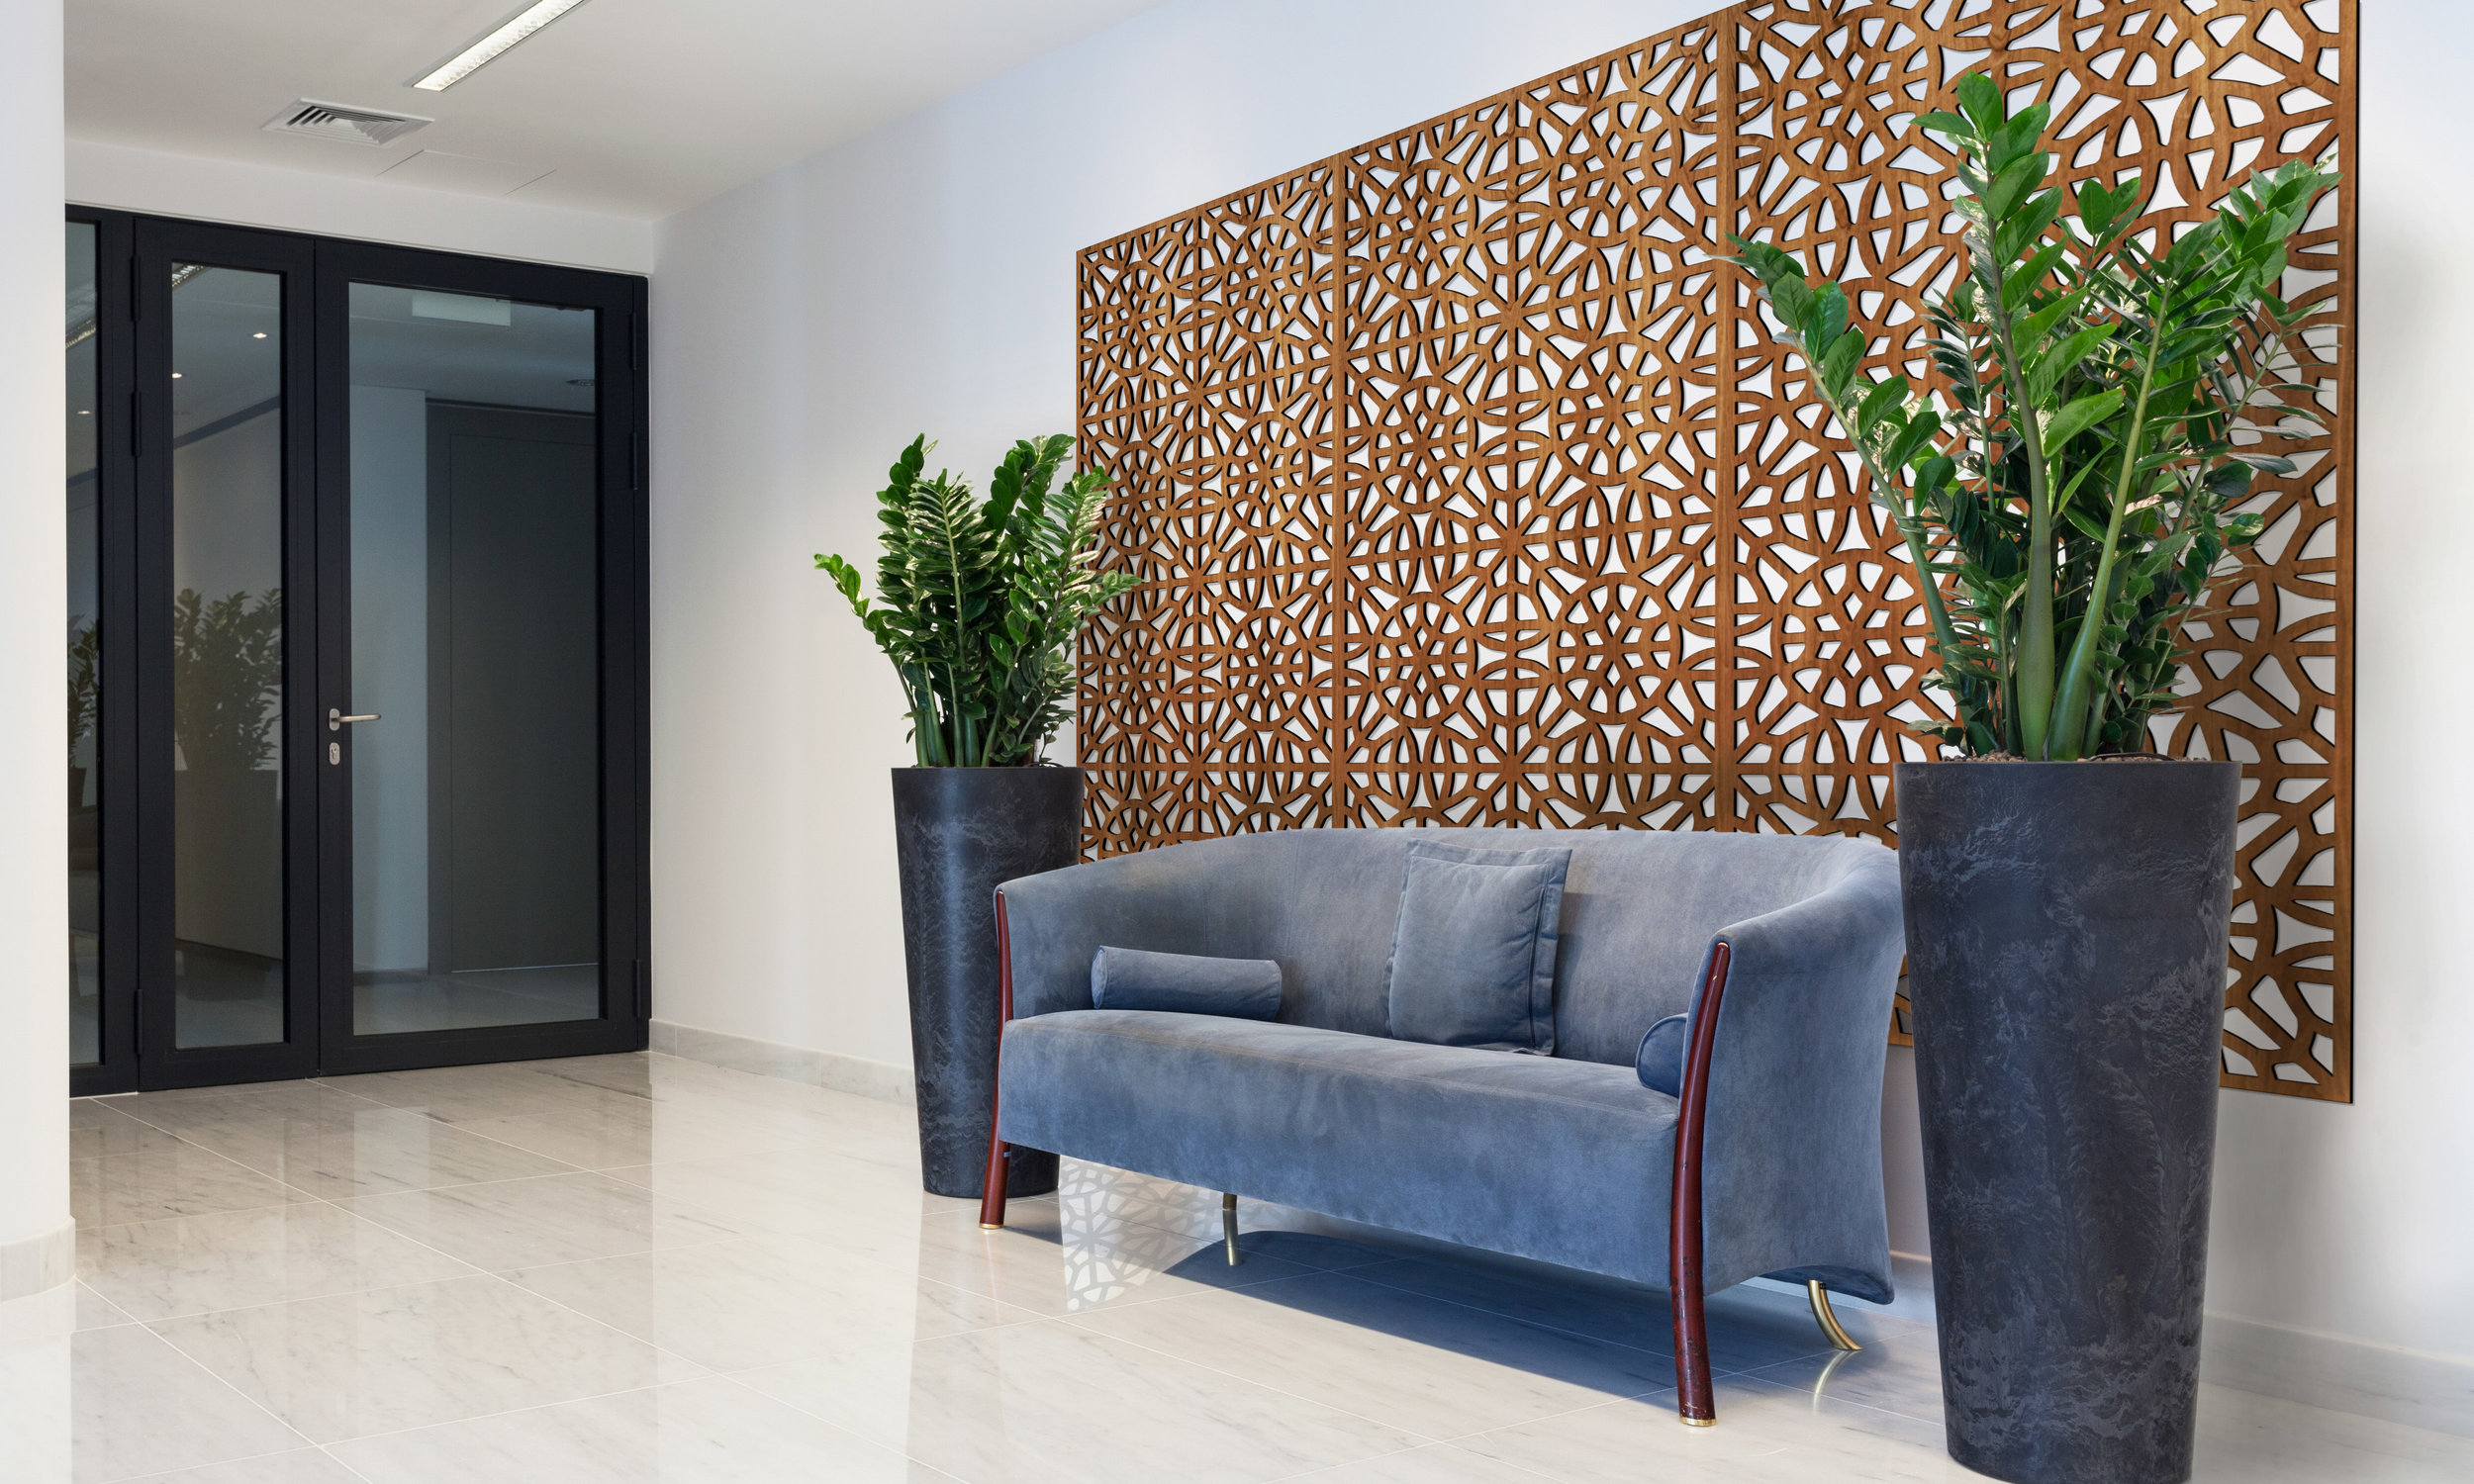 Installation Rendering A   Brooklyn decorative office wall panel - shown in Cherry wood